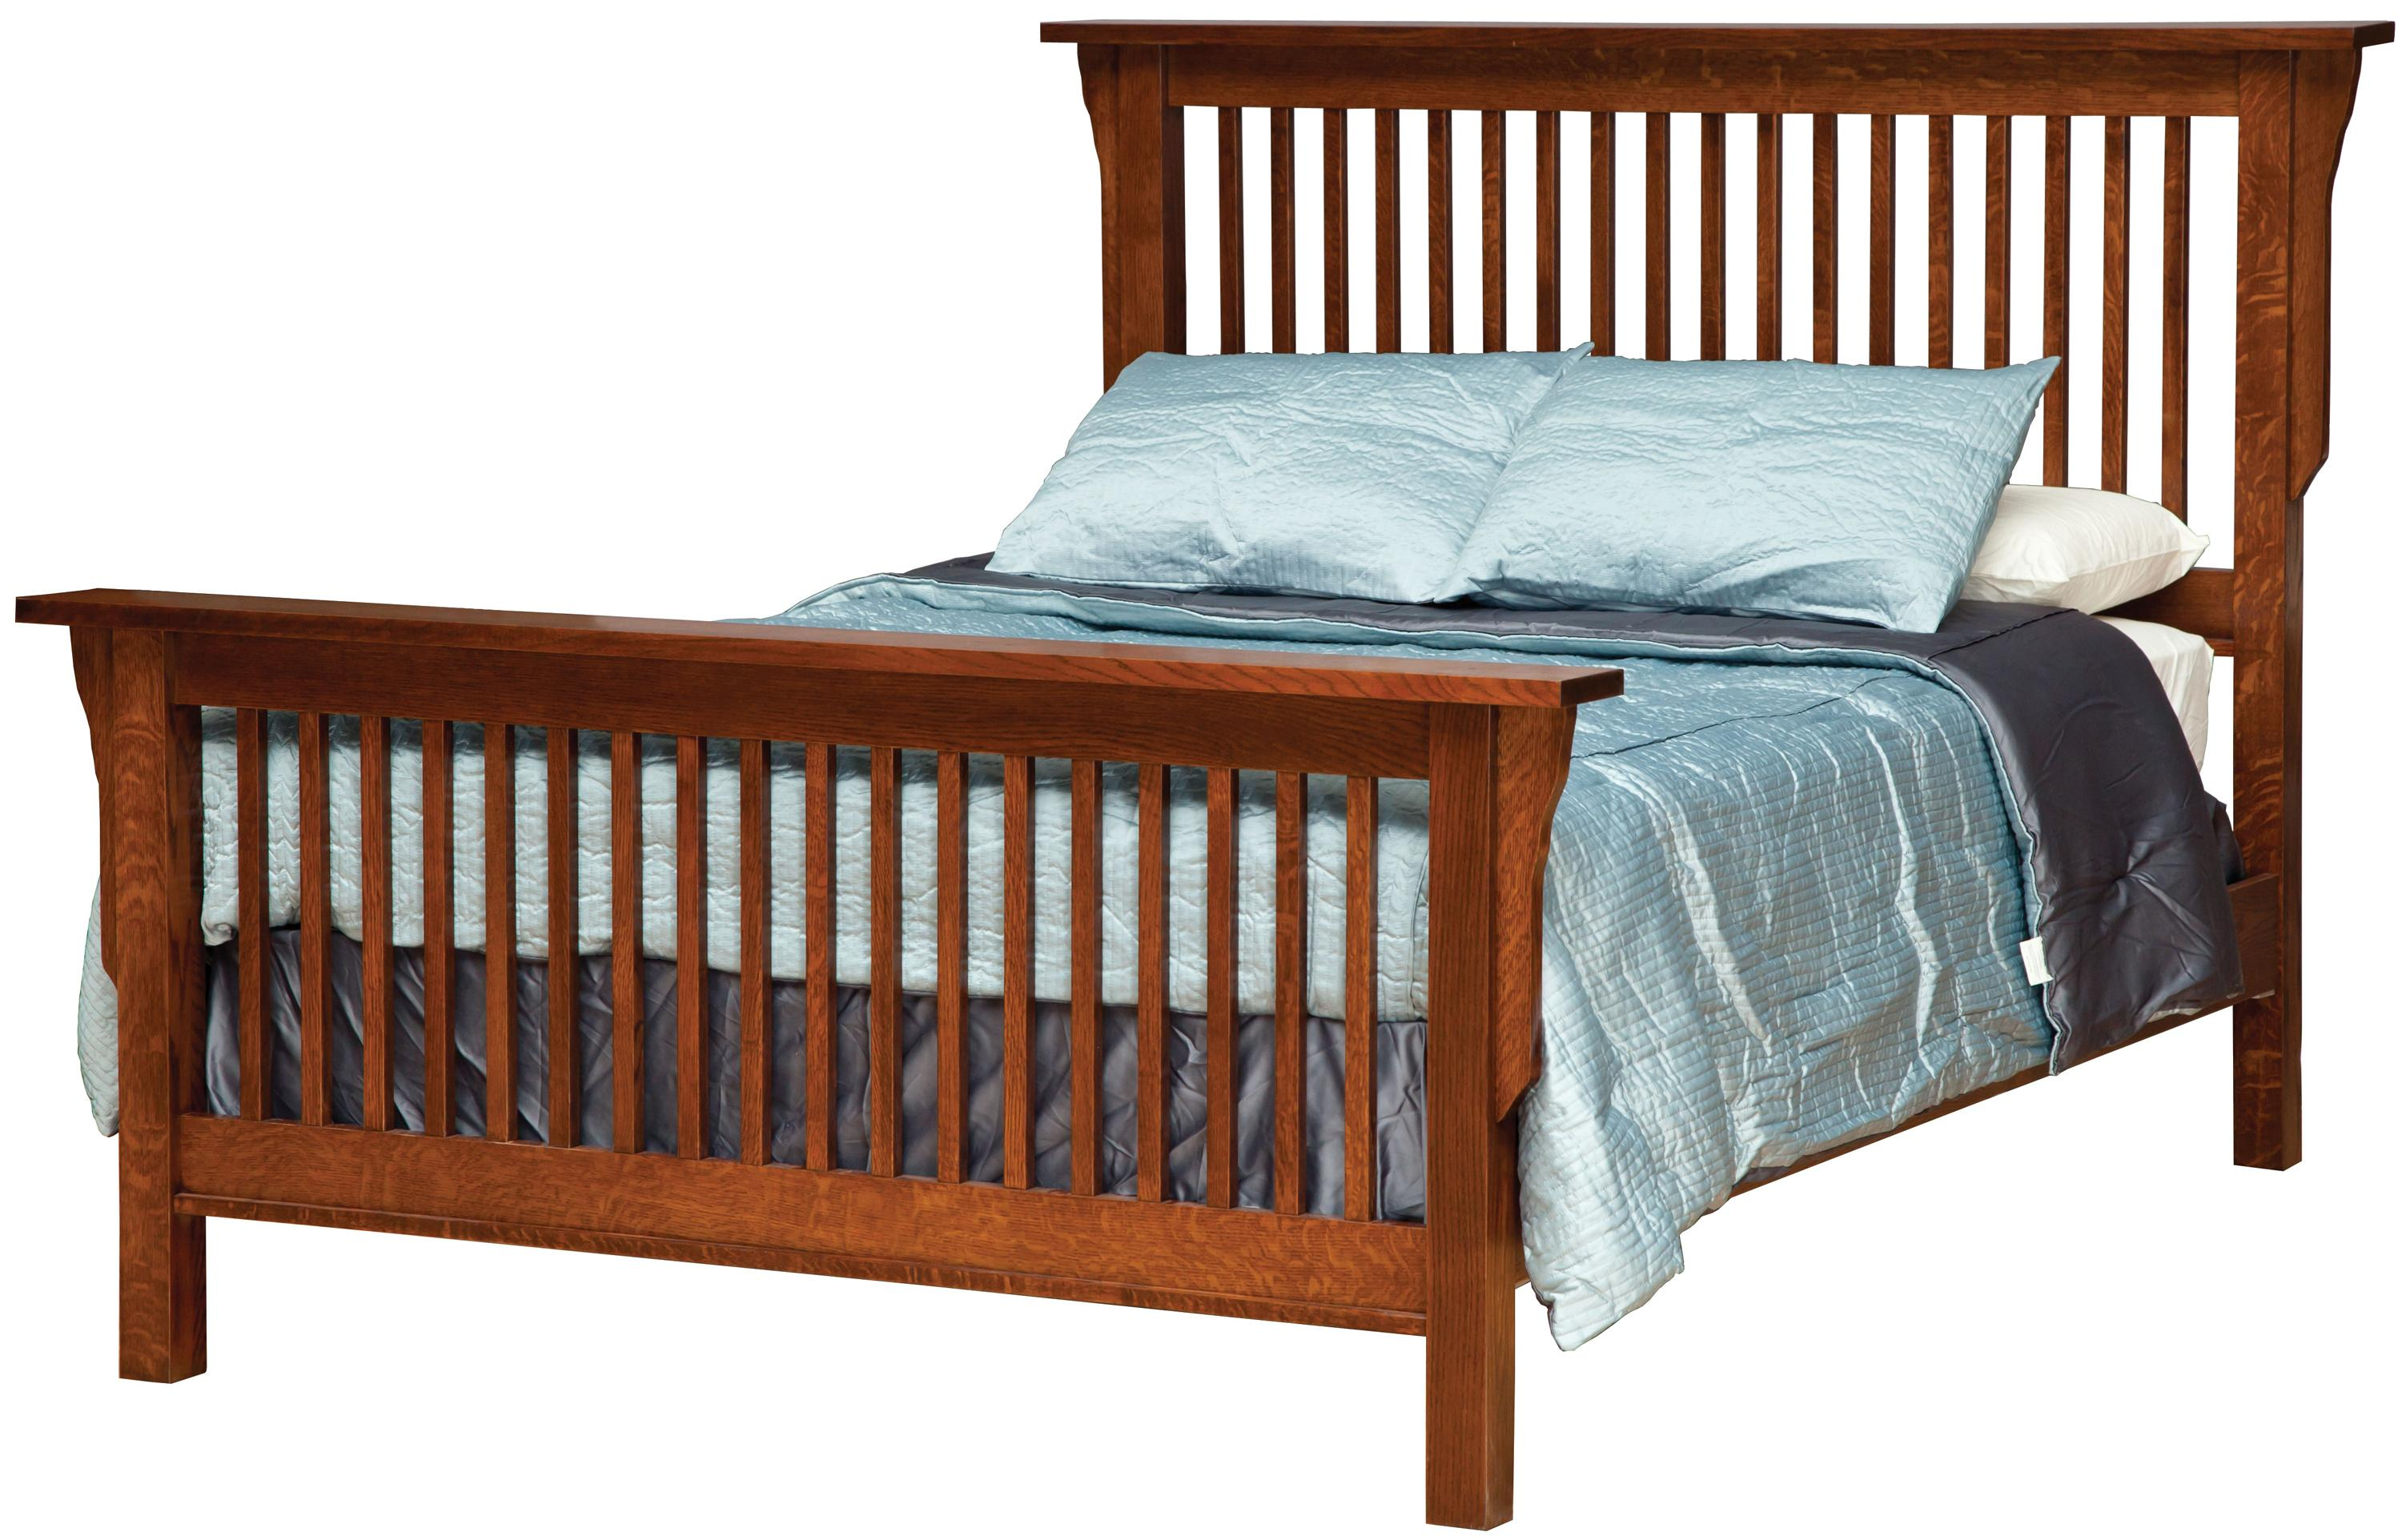 Daniel s Amish Mission Queen Mission Style Frame Bed with Headboard     Daniel s Amish Mission Queen Mission Style Frame Bed with Headboard    Footboard Slat Detail   Westrich Furniture   Appliances   Panel Beds